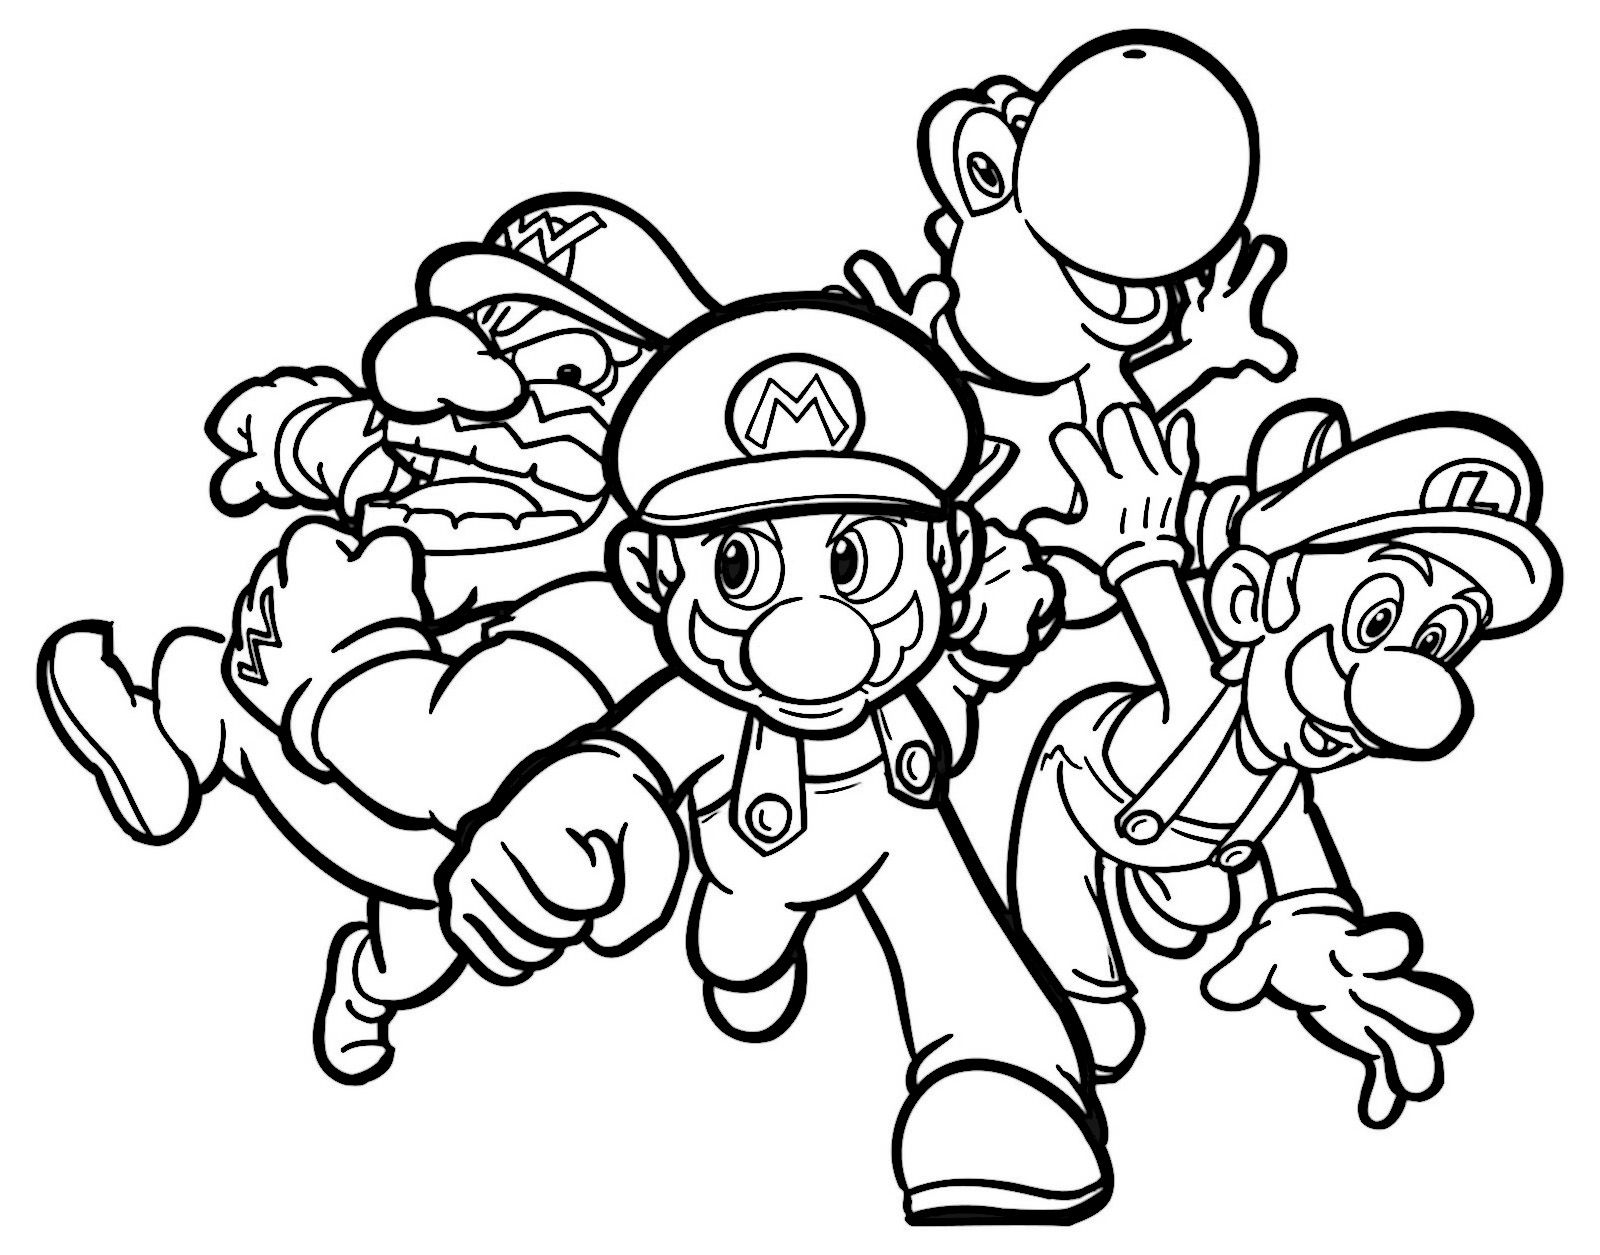 Mario Bross Coloring Pages 2 | Coloring pages for kids | Pinterest ...